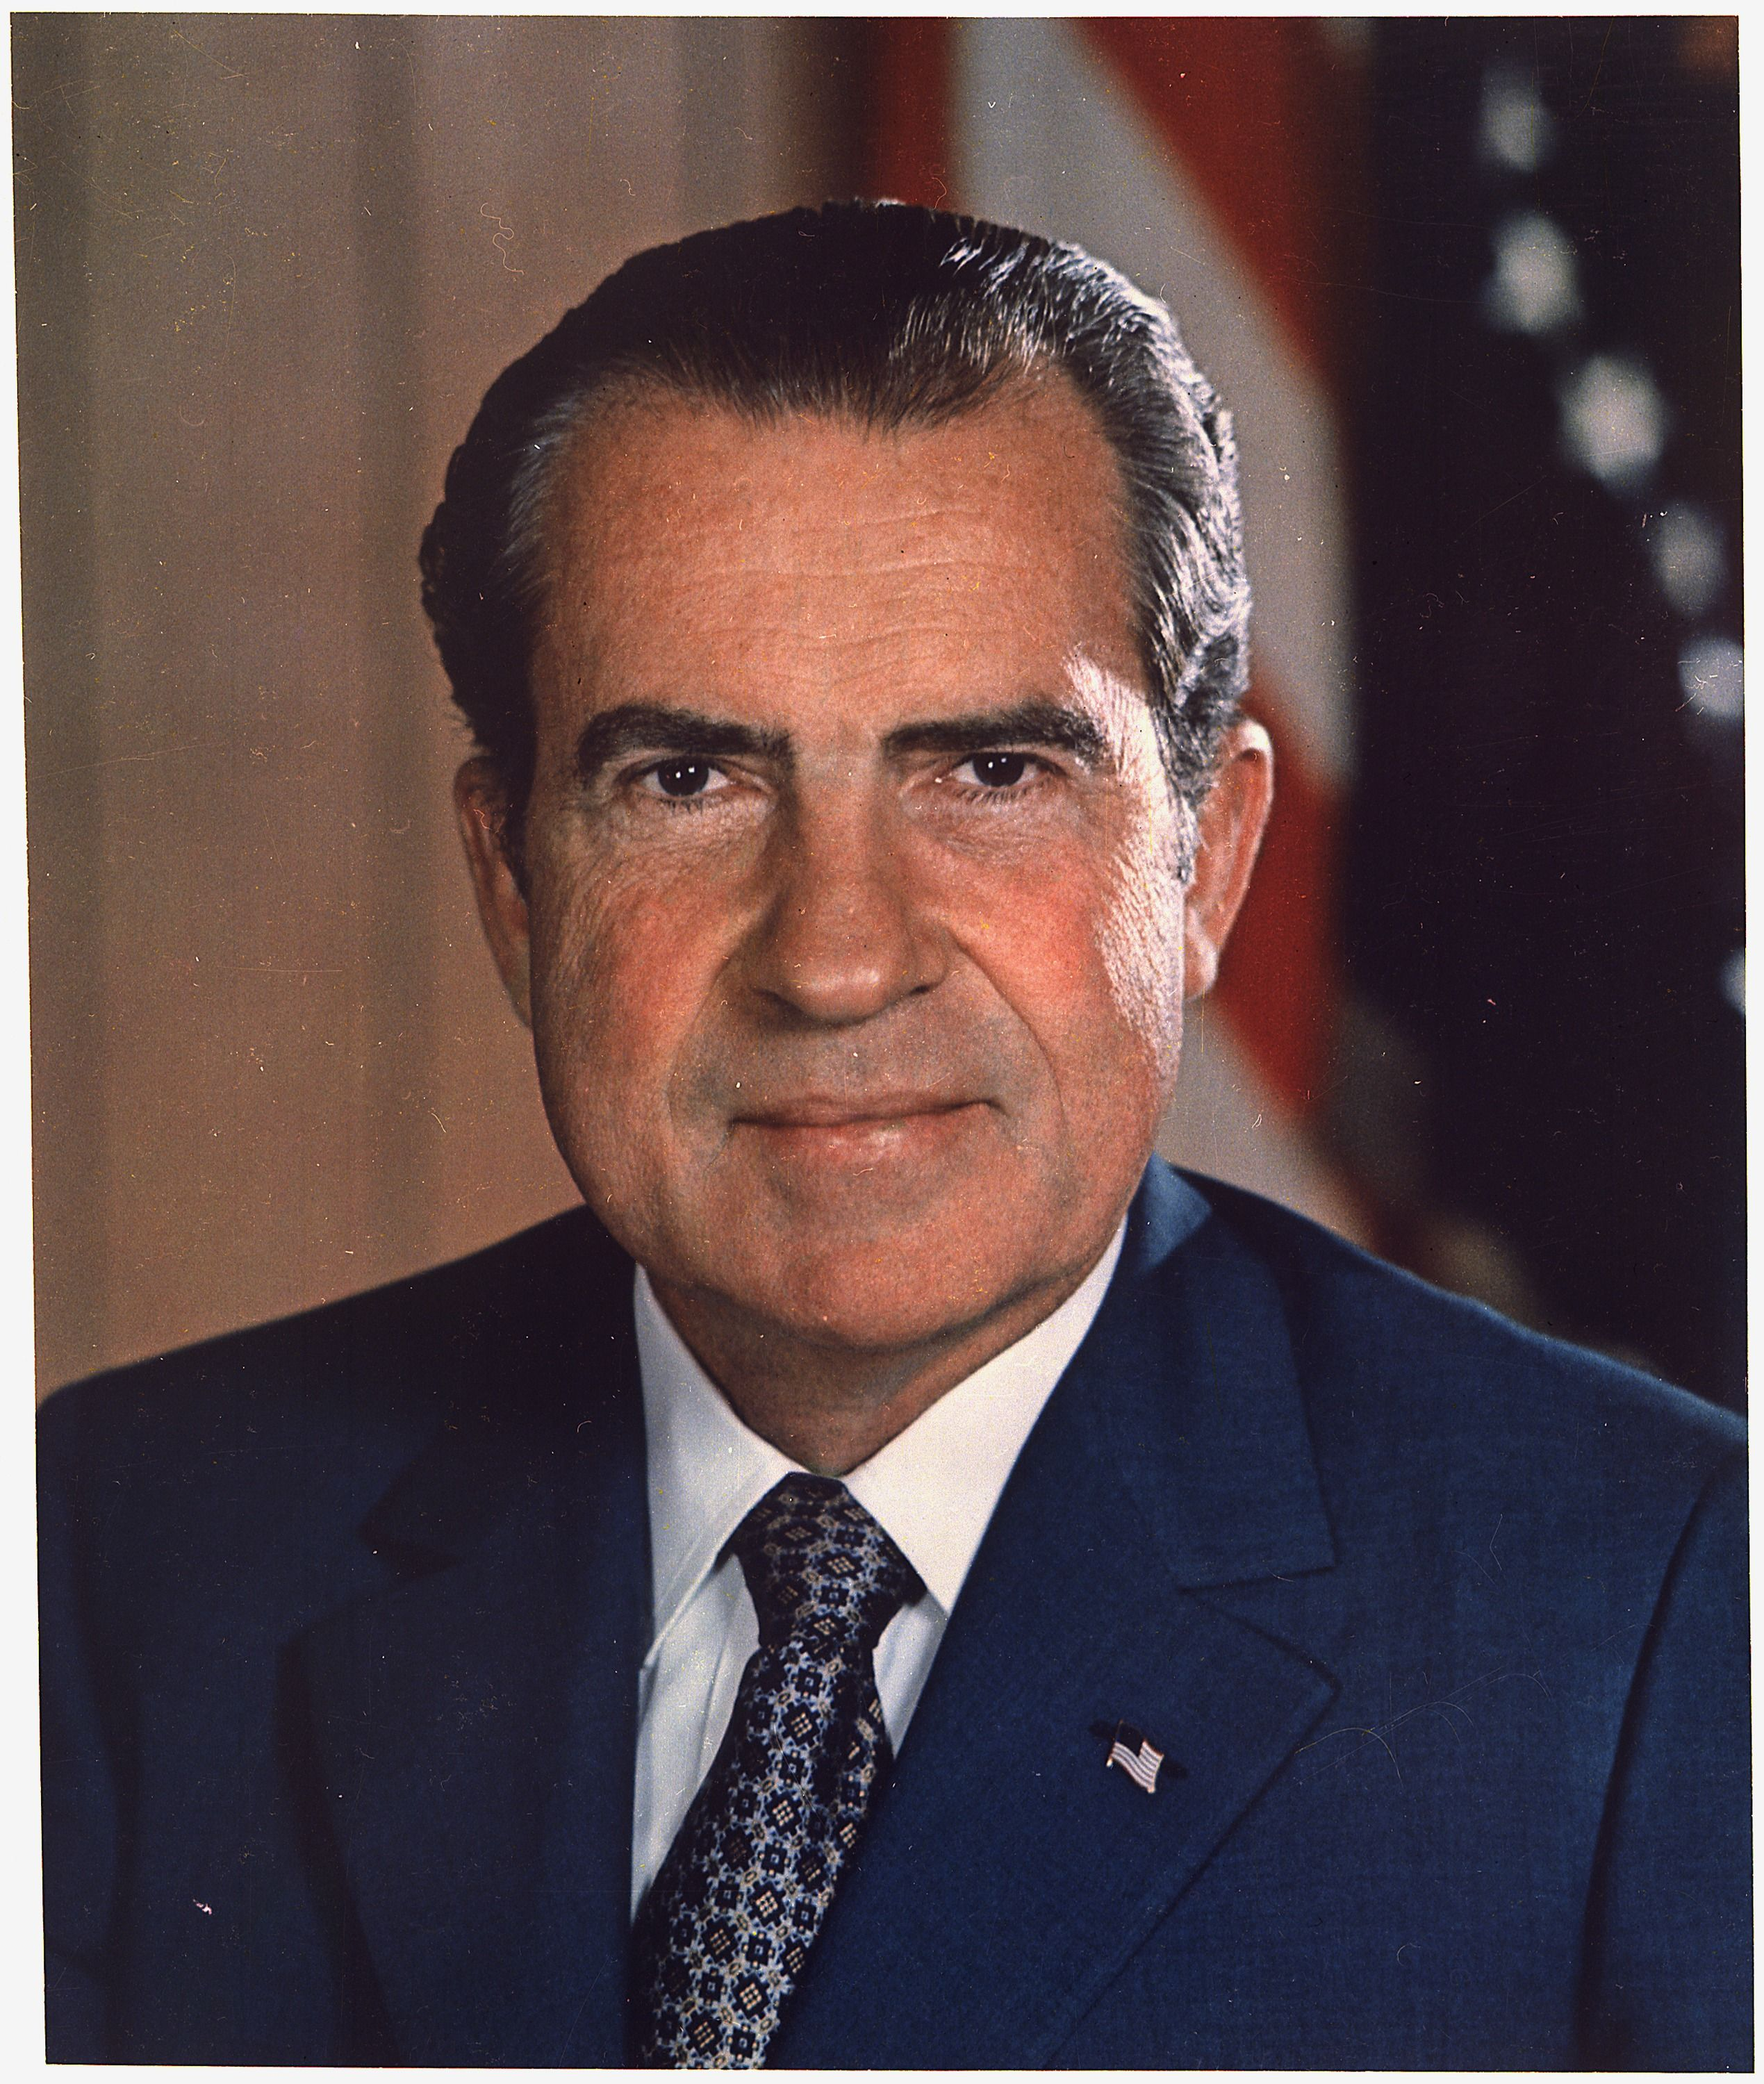 Nixon Administration Cabinet World Leader Richard M Nixon Became President After Lbj But